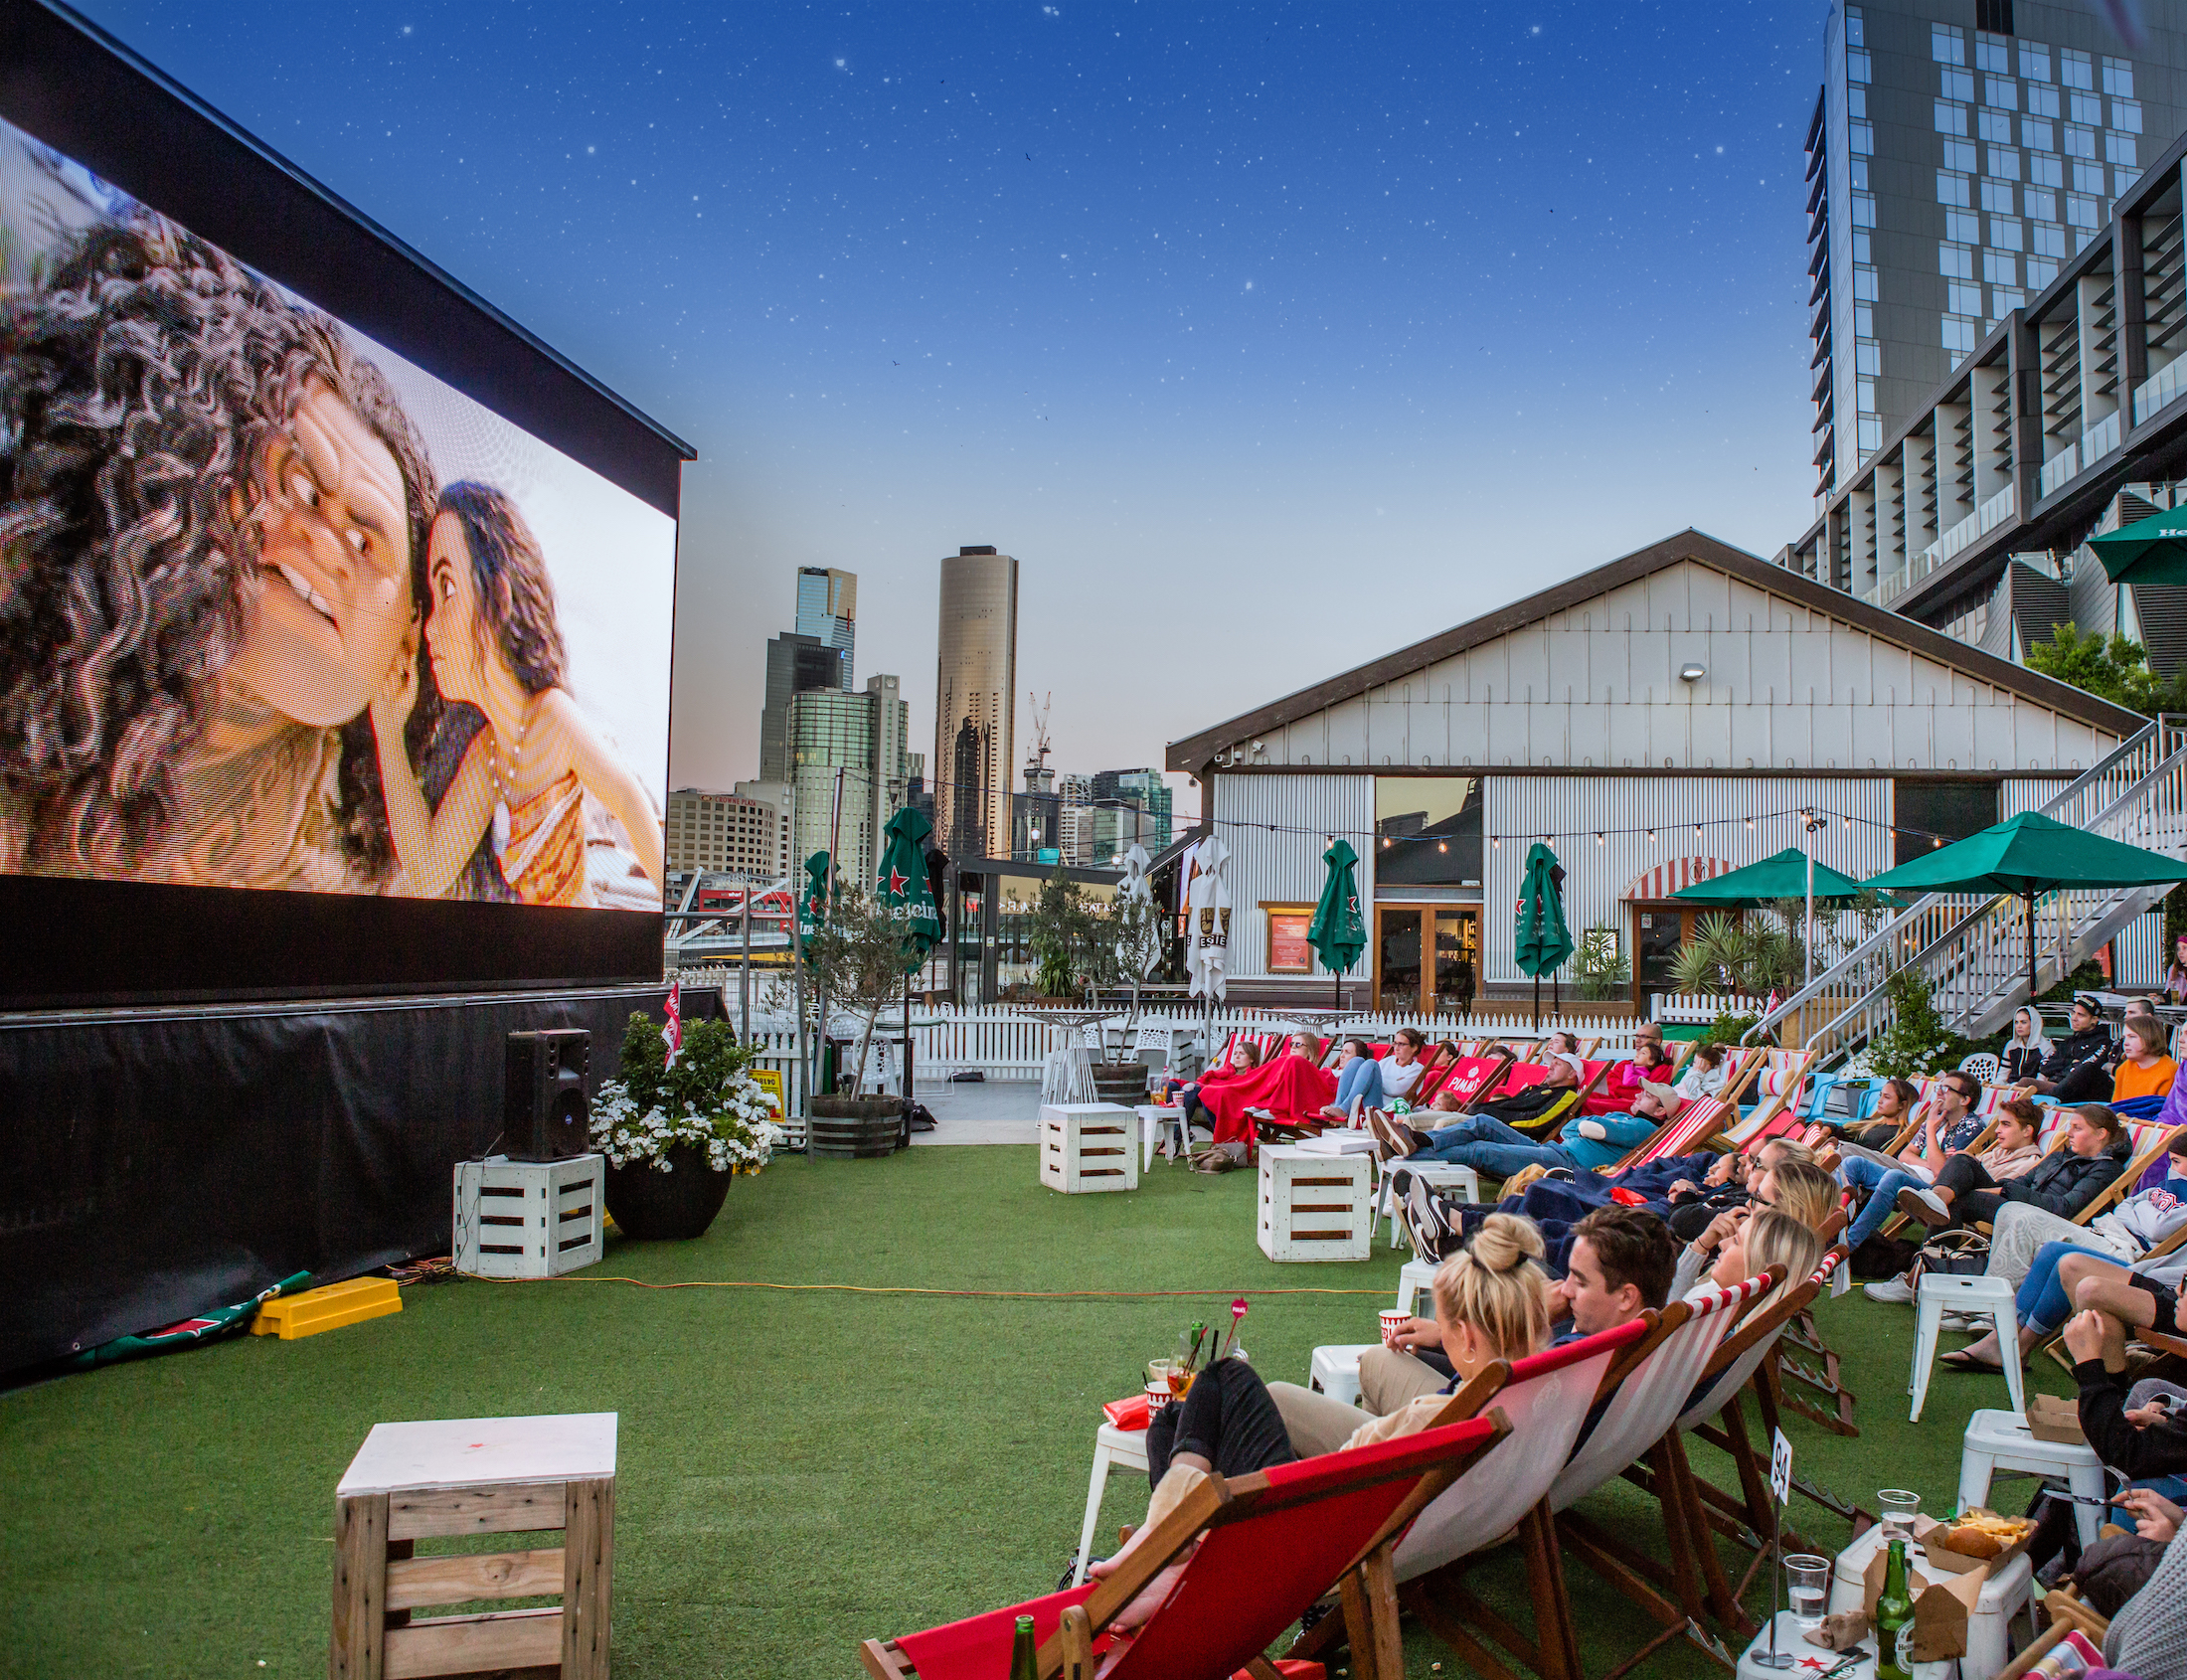 People seated on deckchairs to watch a movie on a big screen